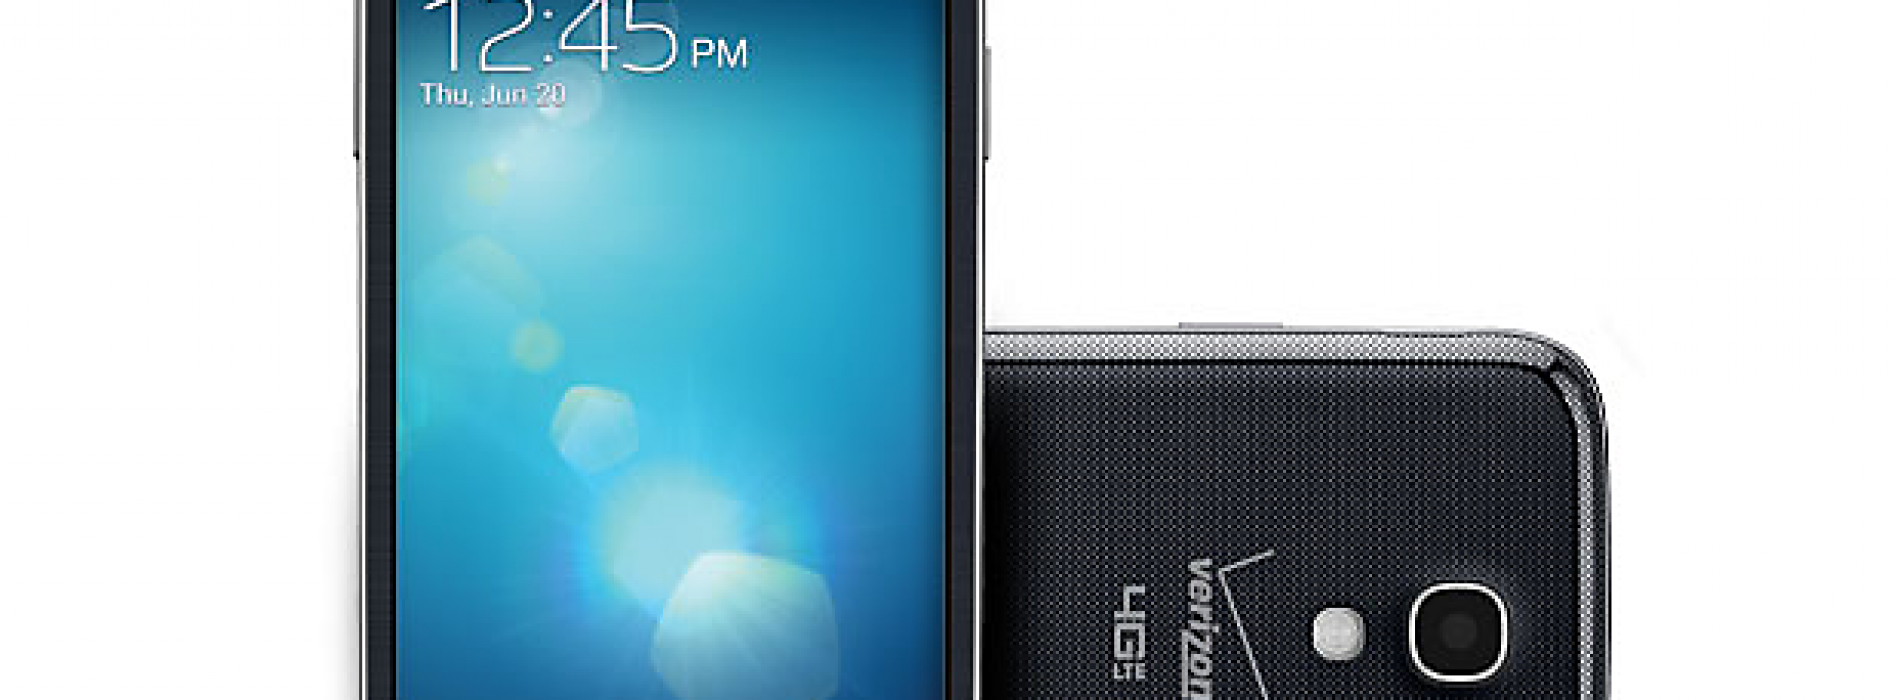 Verizon now offering Samsung Galaxy S 4 mini and Galaxy S III mini